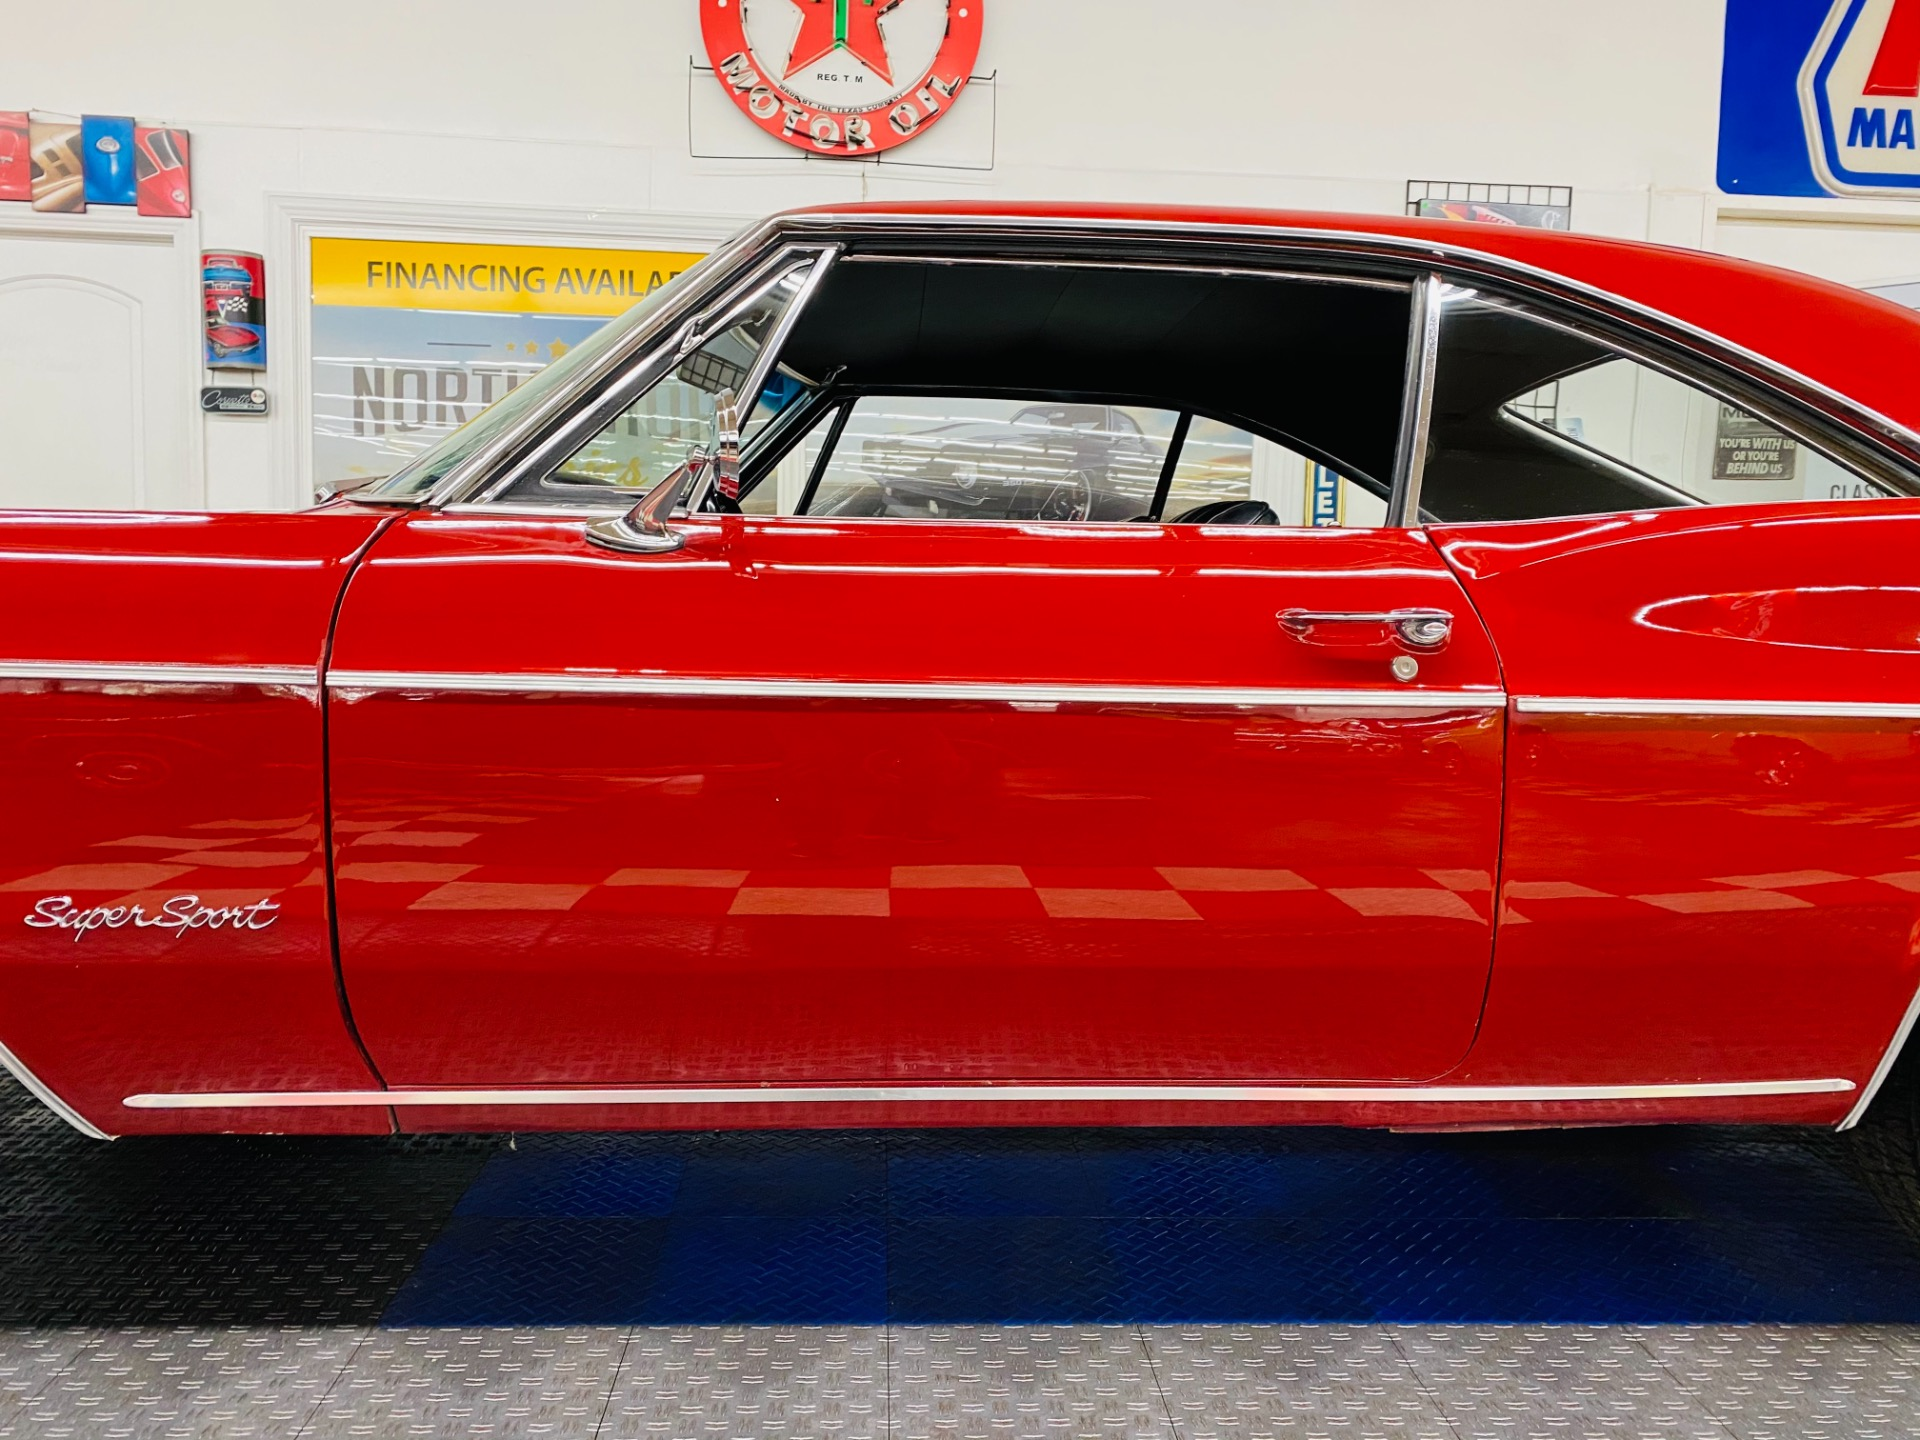 Used 1966 Chevrolet Impala - 454 BBC ENGINE - CLEAN BODY - SEE VIDEO | Mundelein, IL